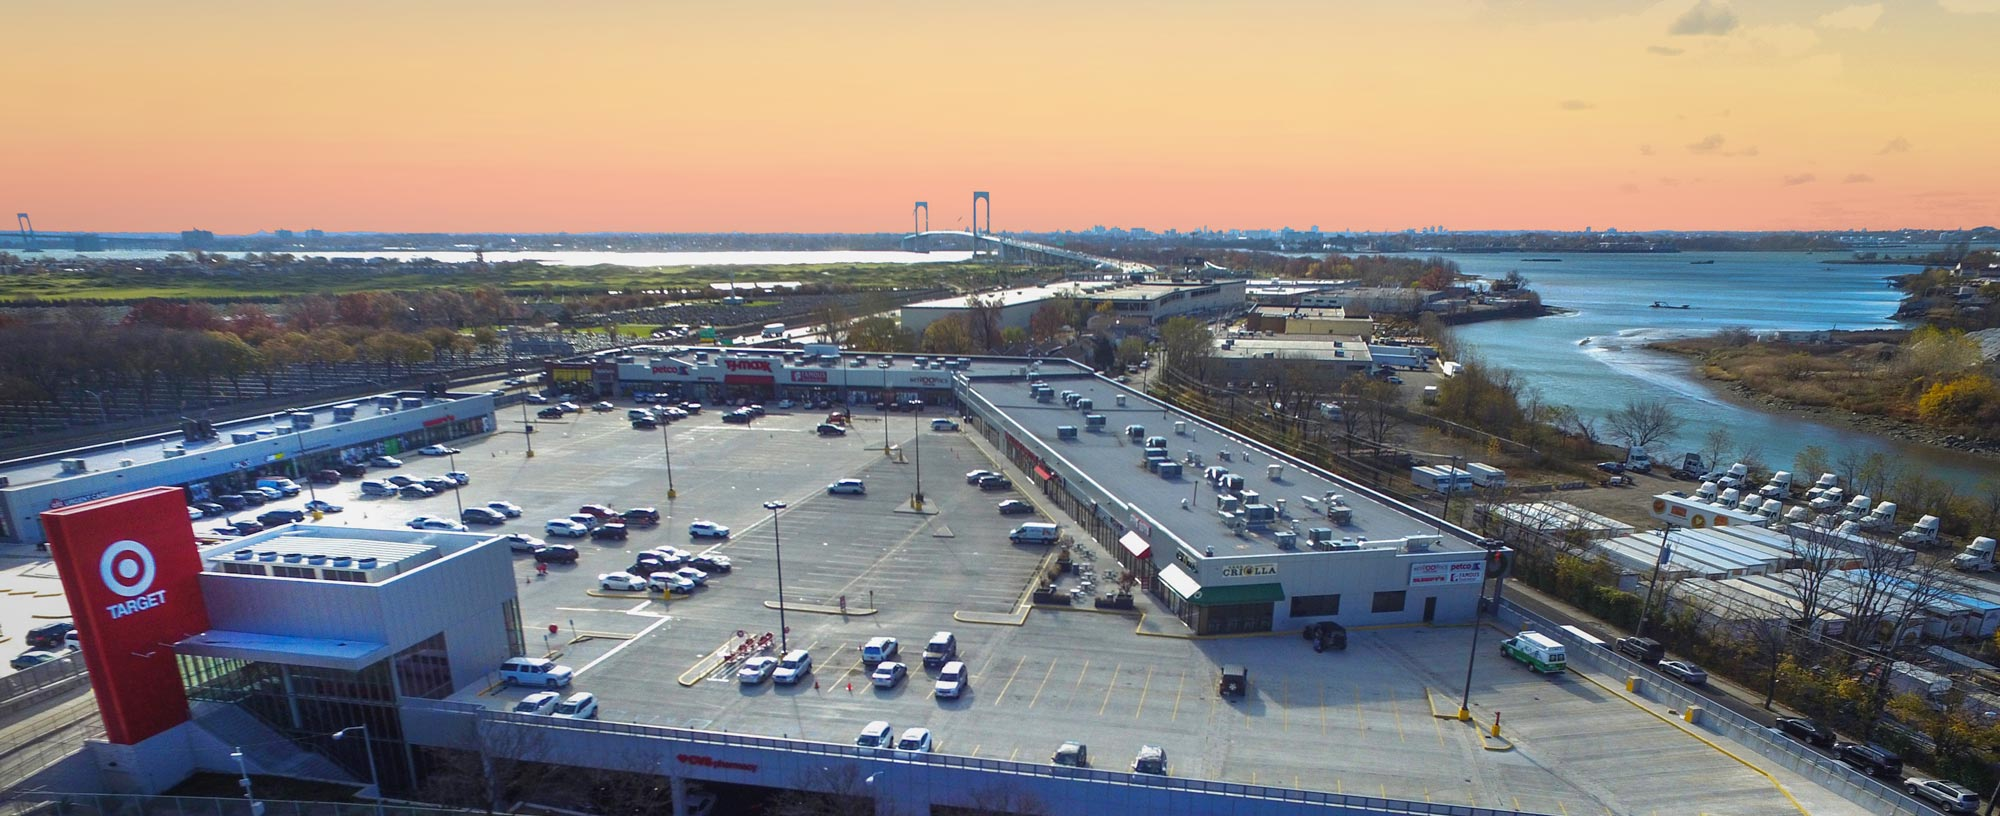 Throggs Neck Shopping Center